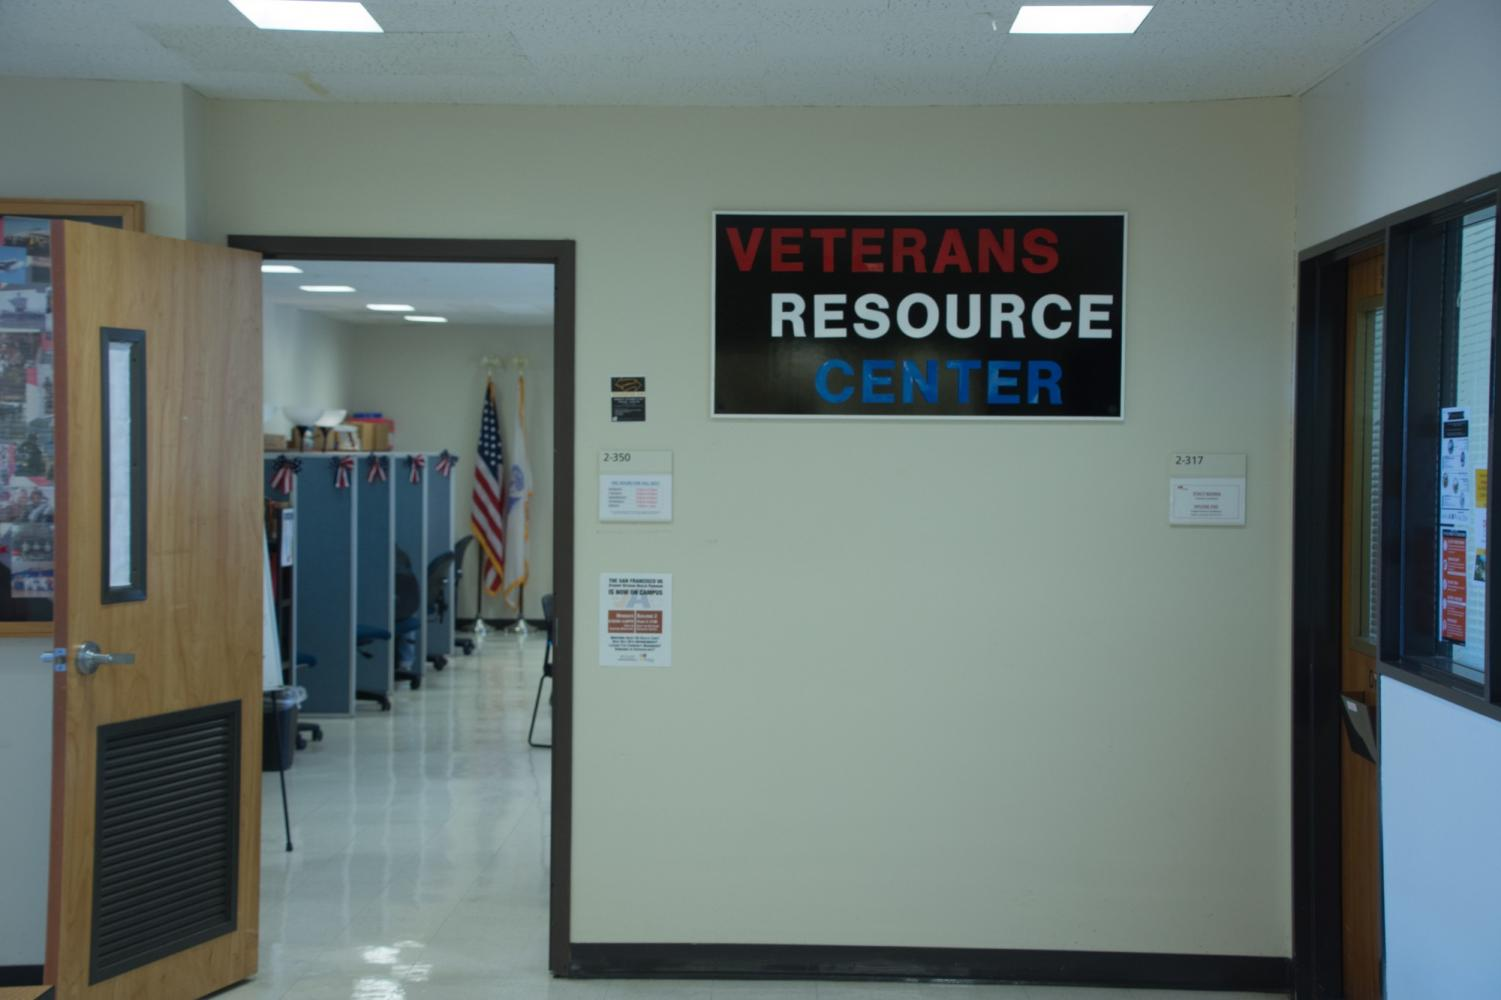 Veterans Resource Center helps students veterans adjust